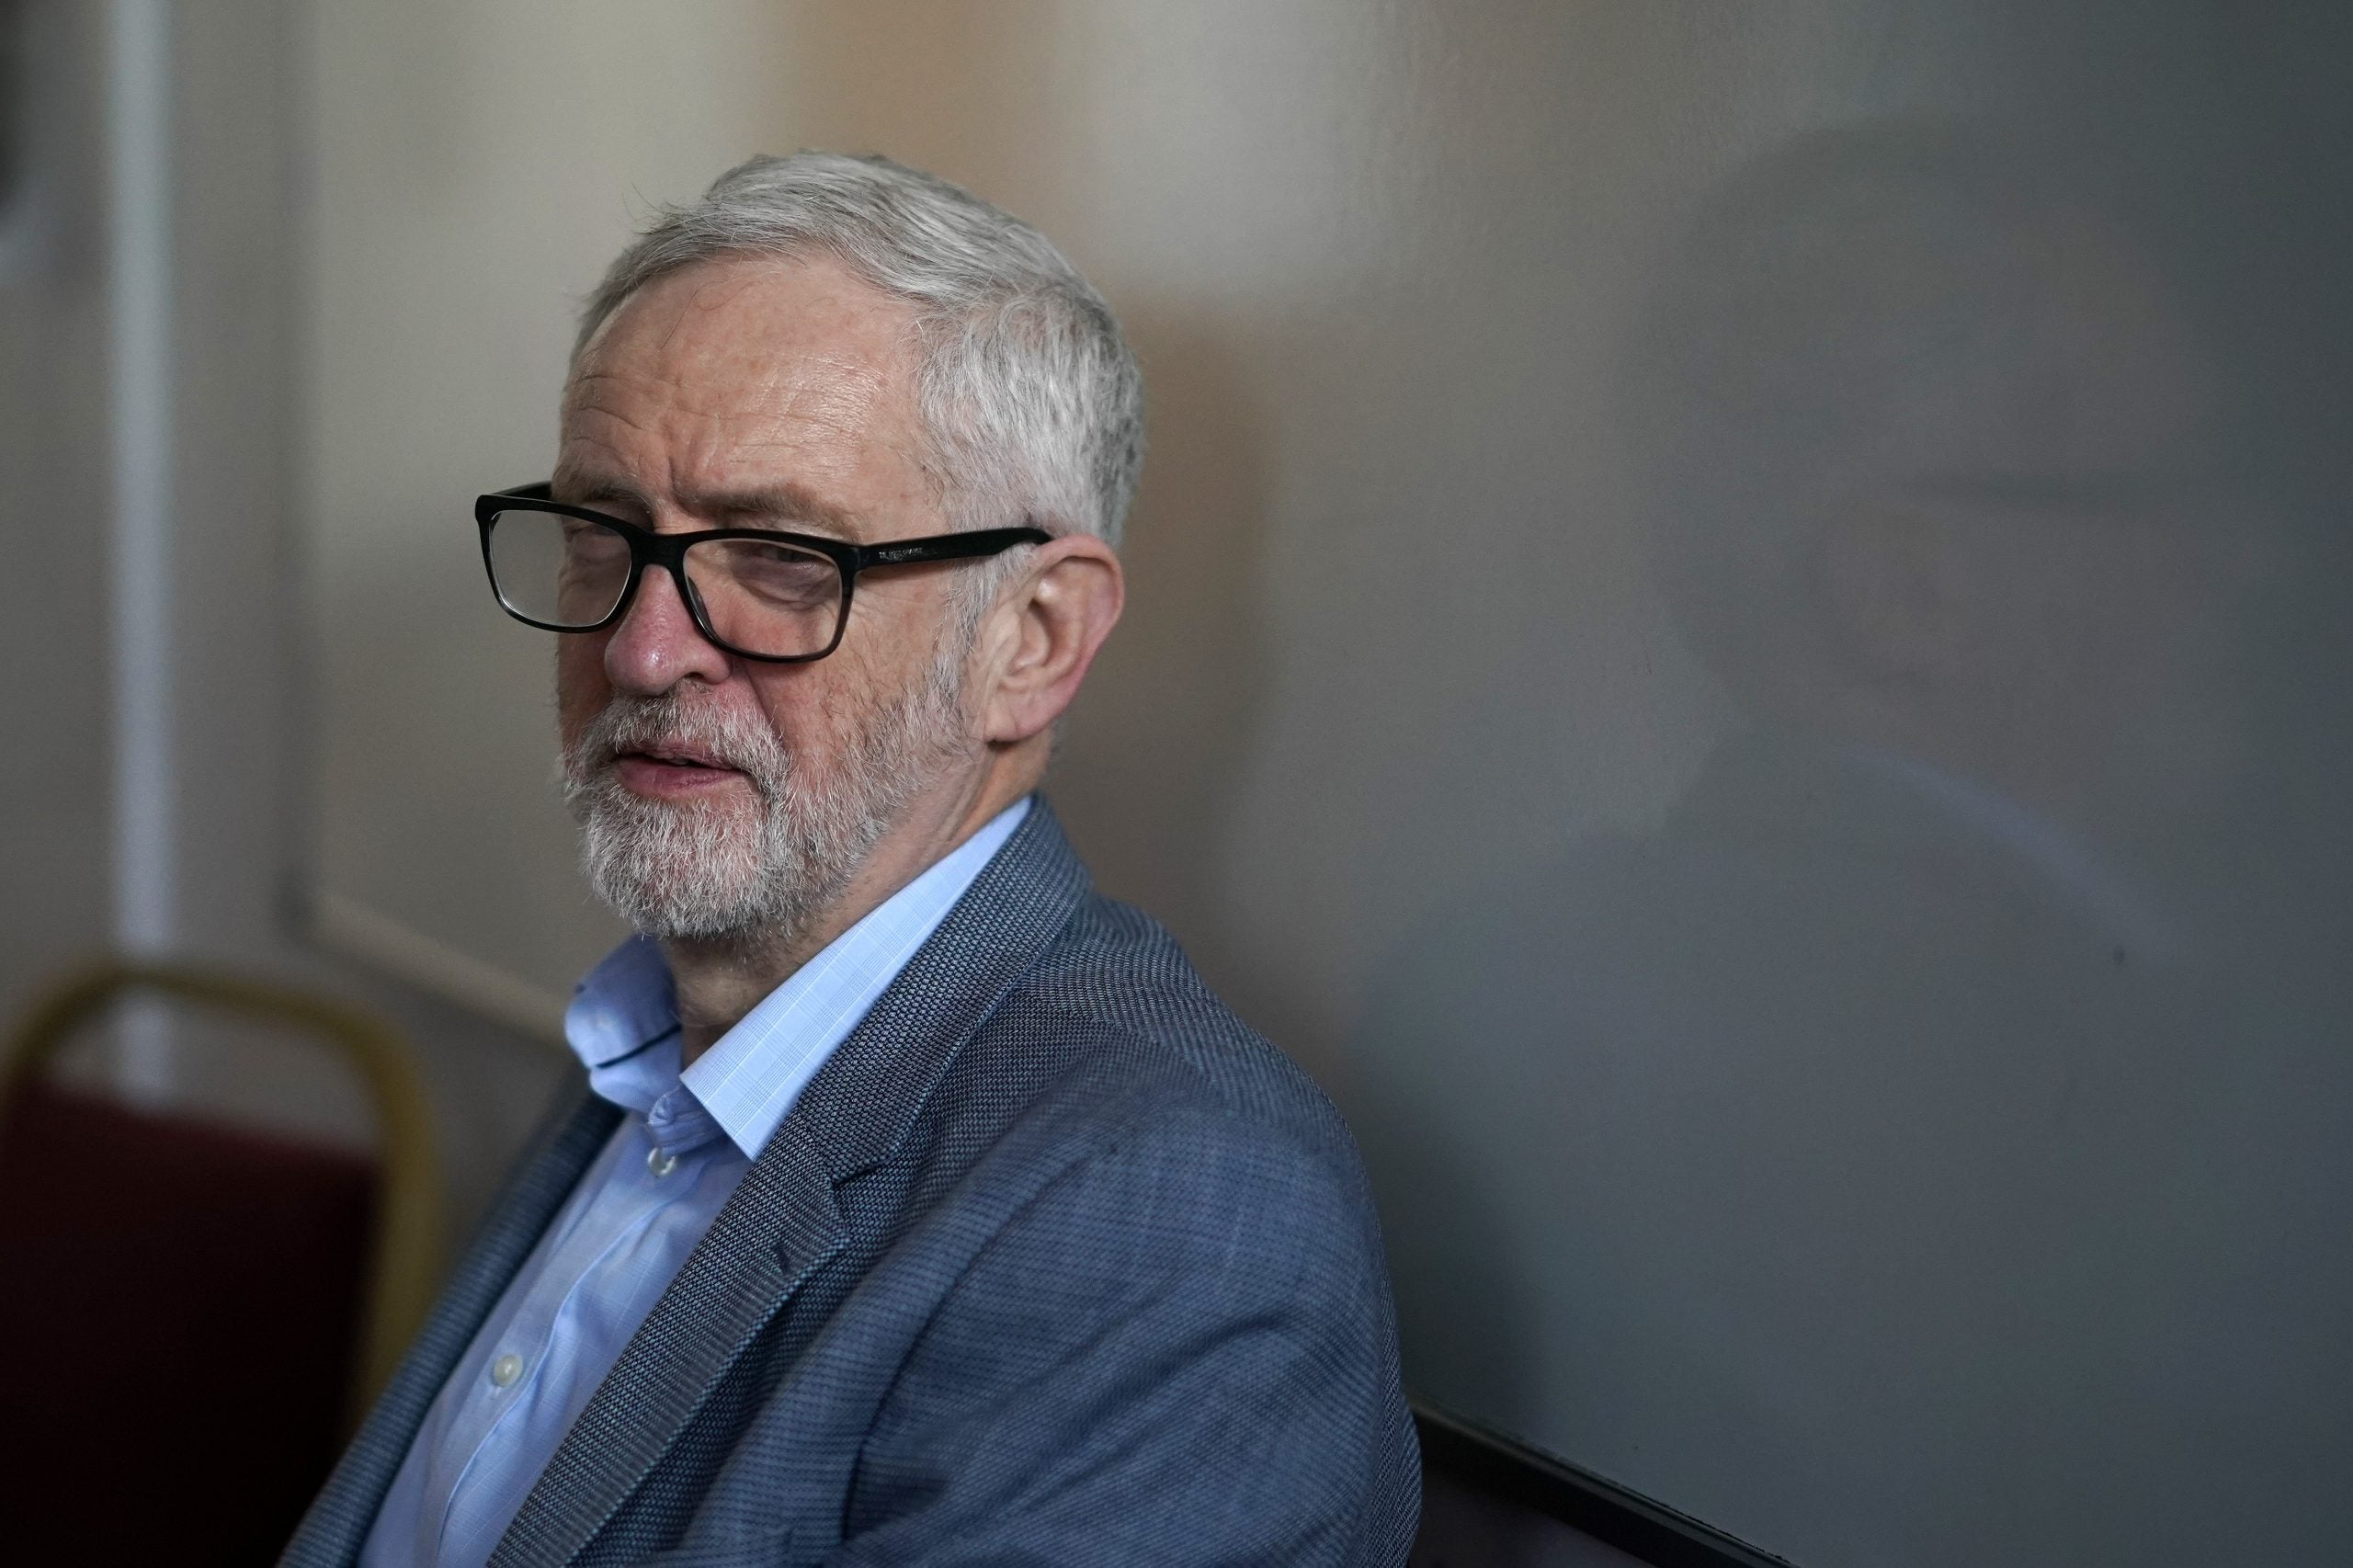 To win again, Labour must rediscover its Liberal past